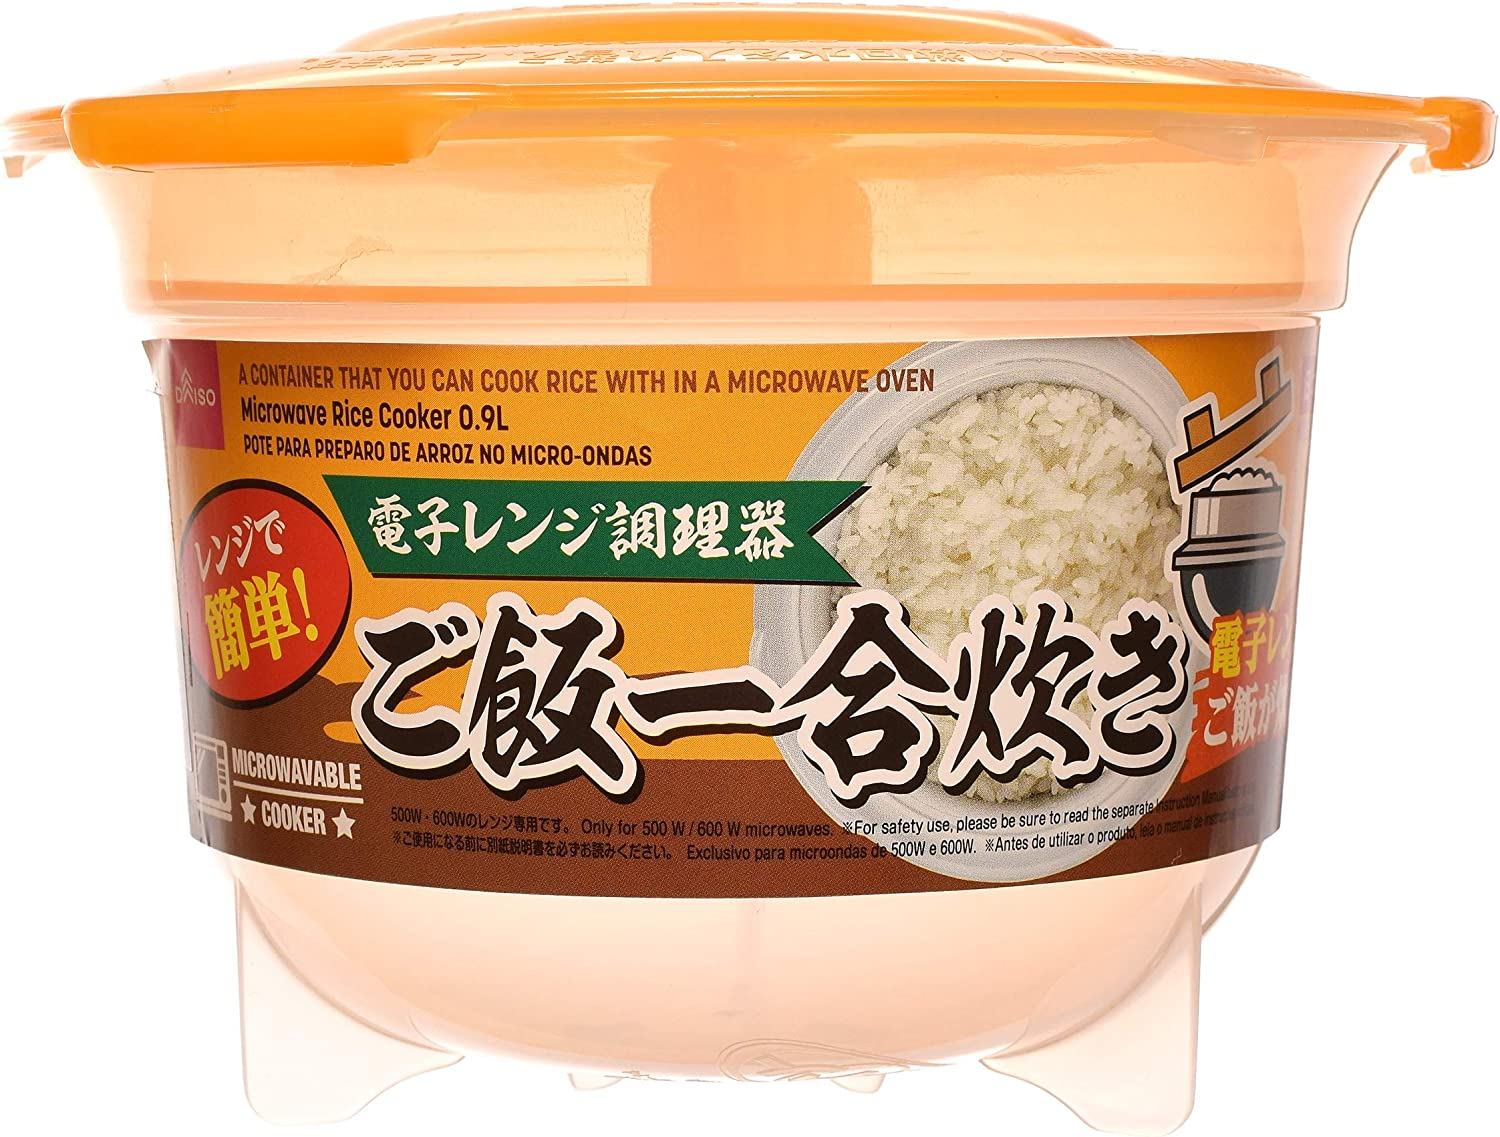 Rice Cooker Microwave 0.9L,Rice Maker,1 Cup(1 go daki) of Rice,Rice Cooker Small,Japanese